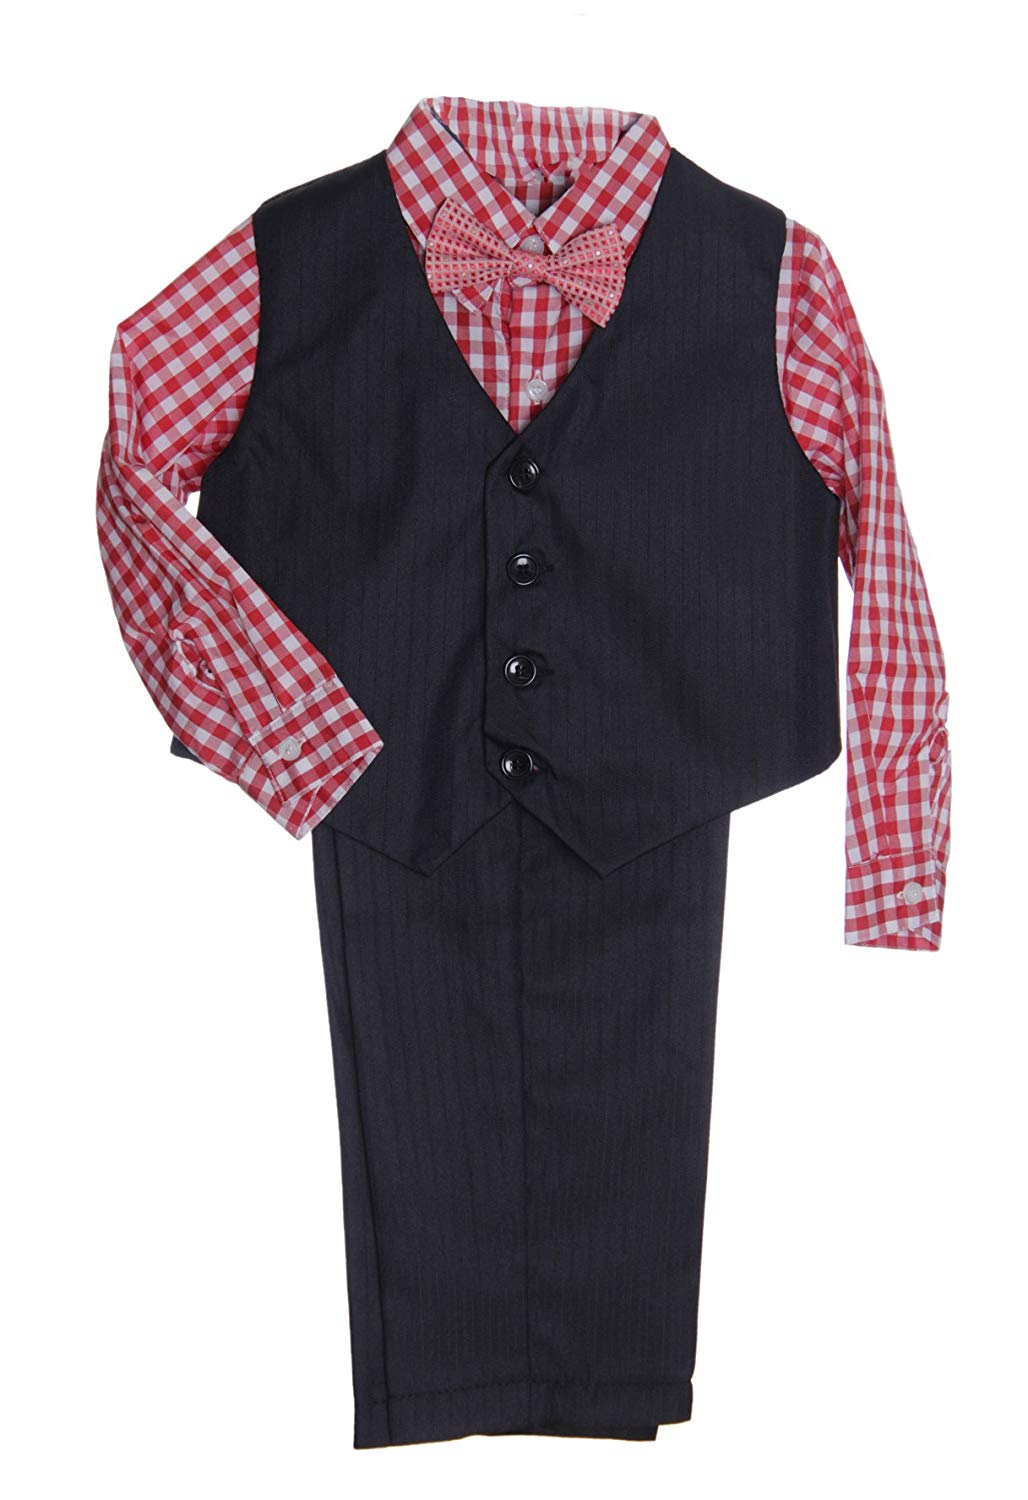 9d4f183e5526 Boys Formal Suit Set - Vest Dress Shirt Pants and Matching Tie Dressy Wear  Outfit By Caldore